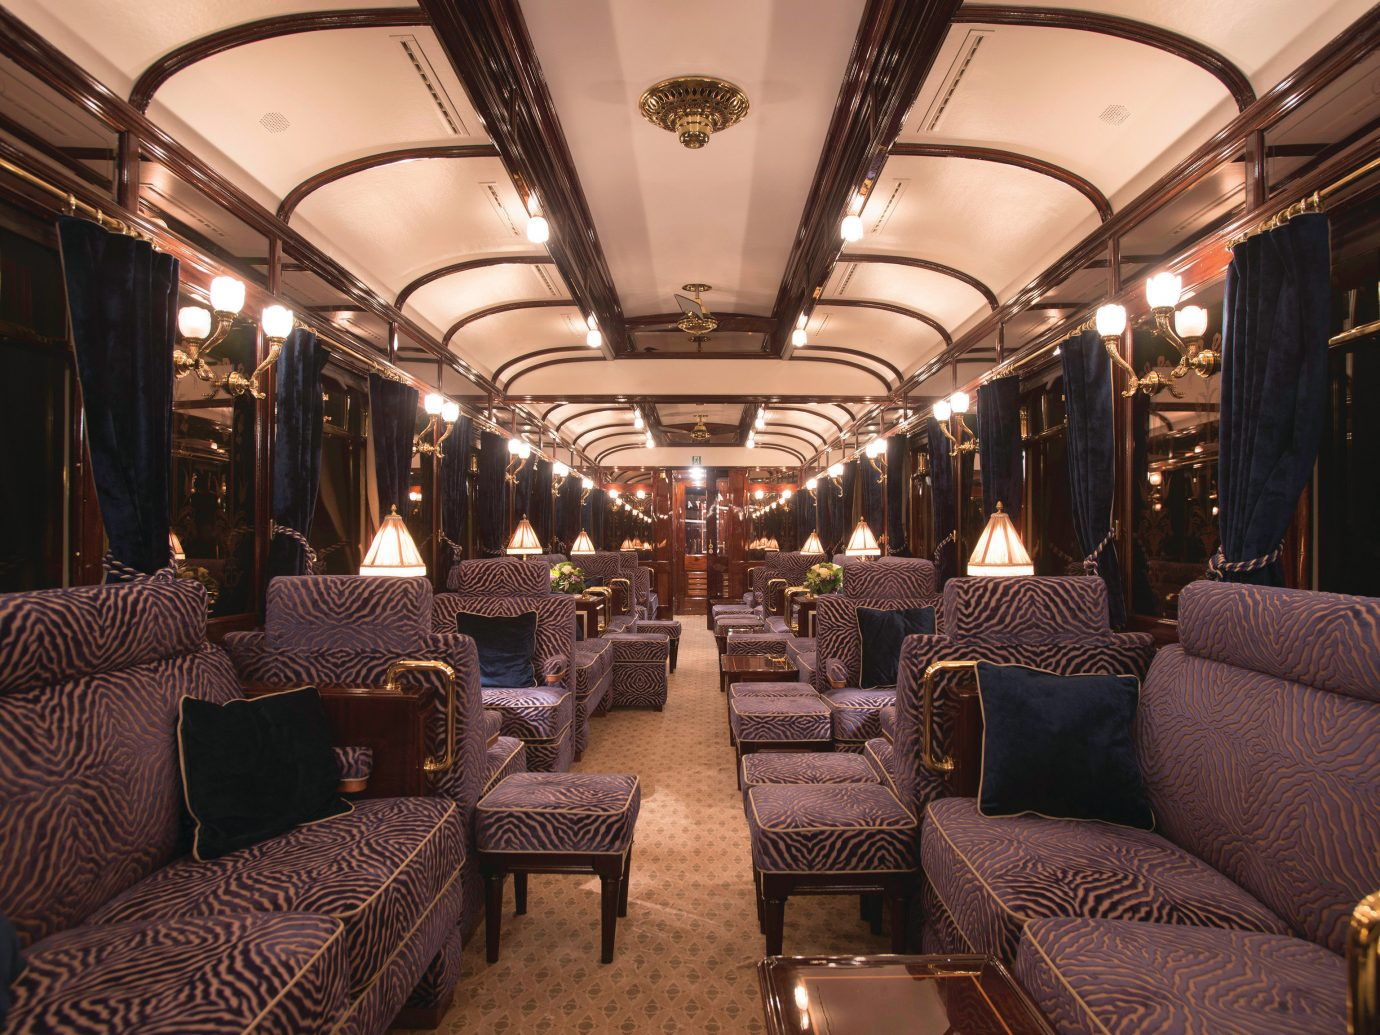 Luxury Travel Trip Ideas indoor transport vehicle chair Cabin passenger train public transport several